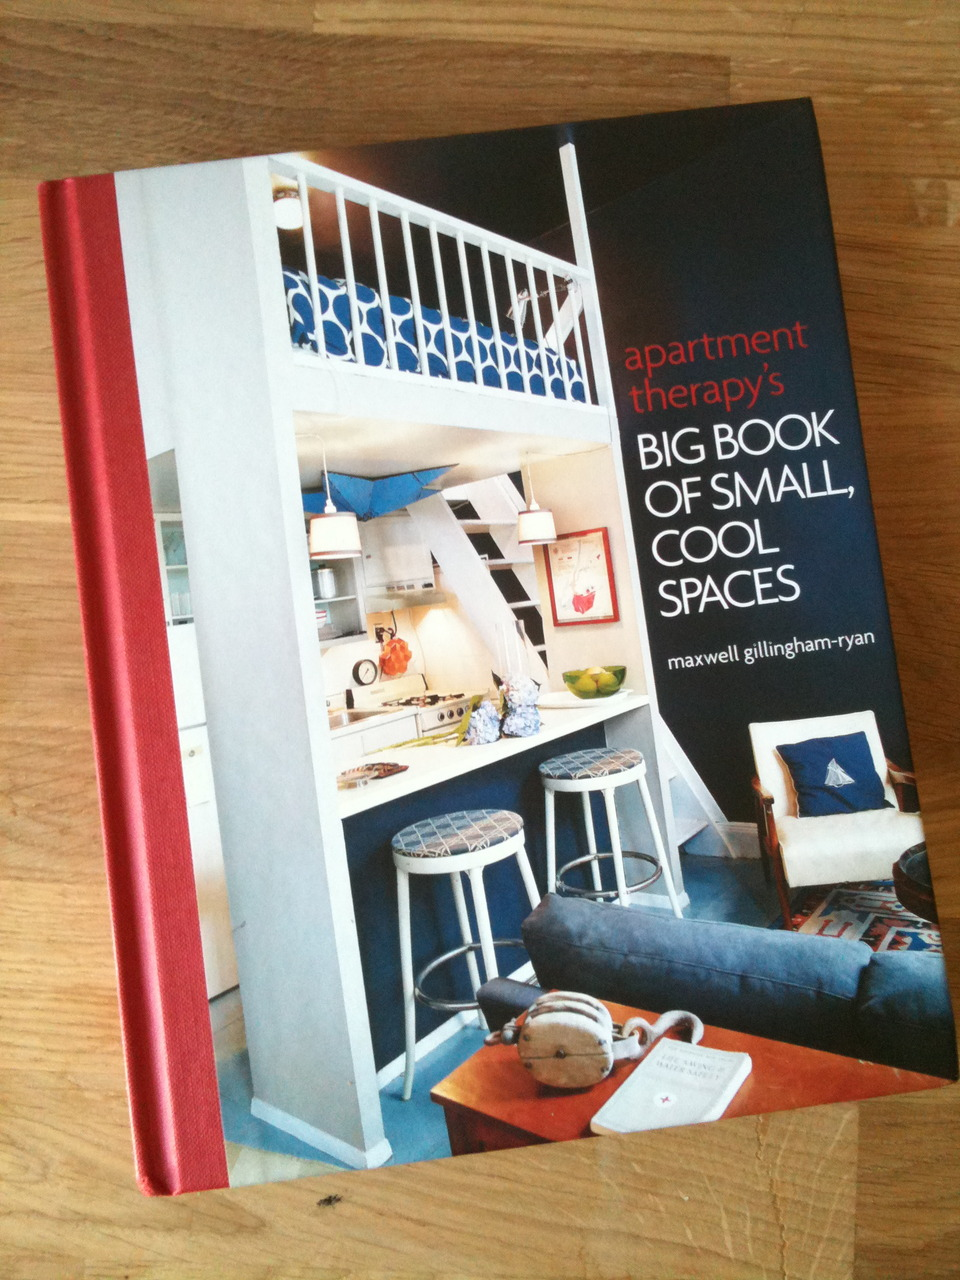 It's here it's here!   My former apartment (The SS Waverly) on the cover of Apartment Therapy's new   Big Book of Small, Cool Spaces